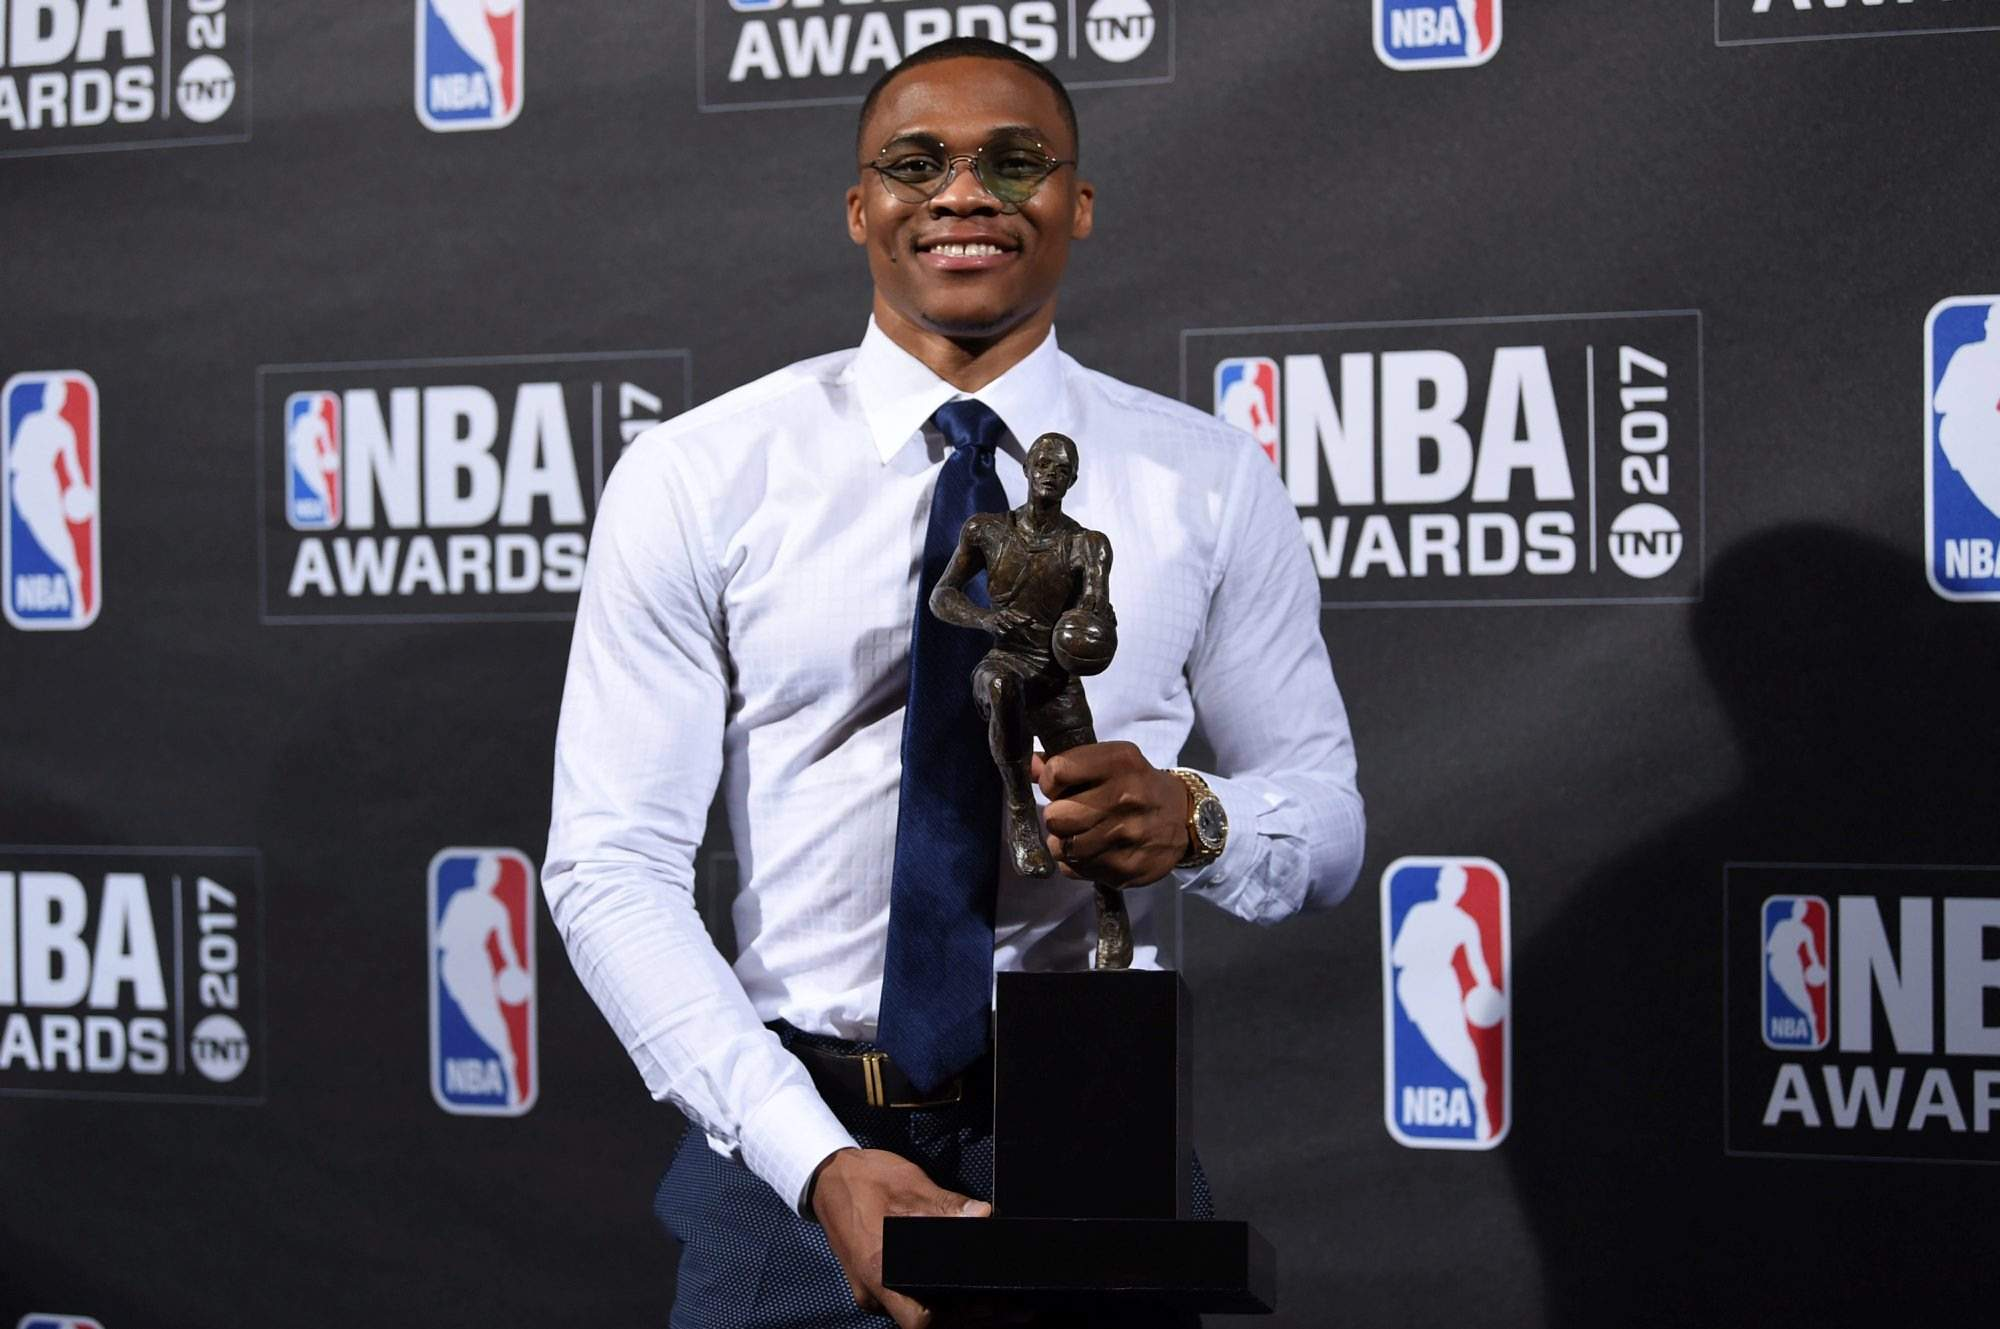 Kia NBA Most Valuable Player Best Style Game Winner Award Russell Westbrook Poses In The Press Room At 2017 Awards Basketball City